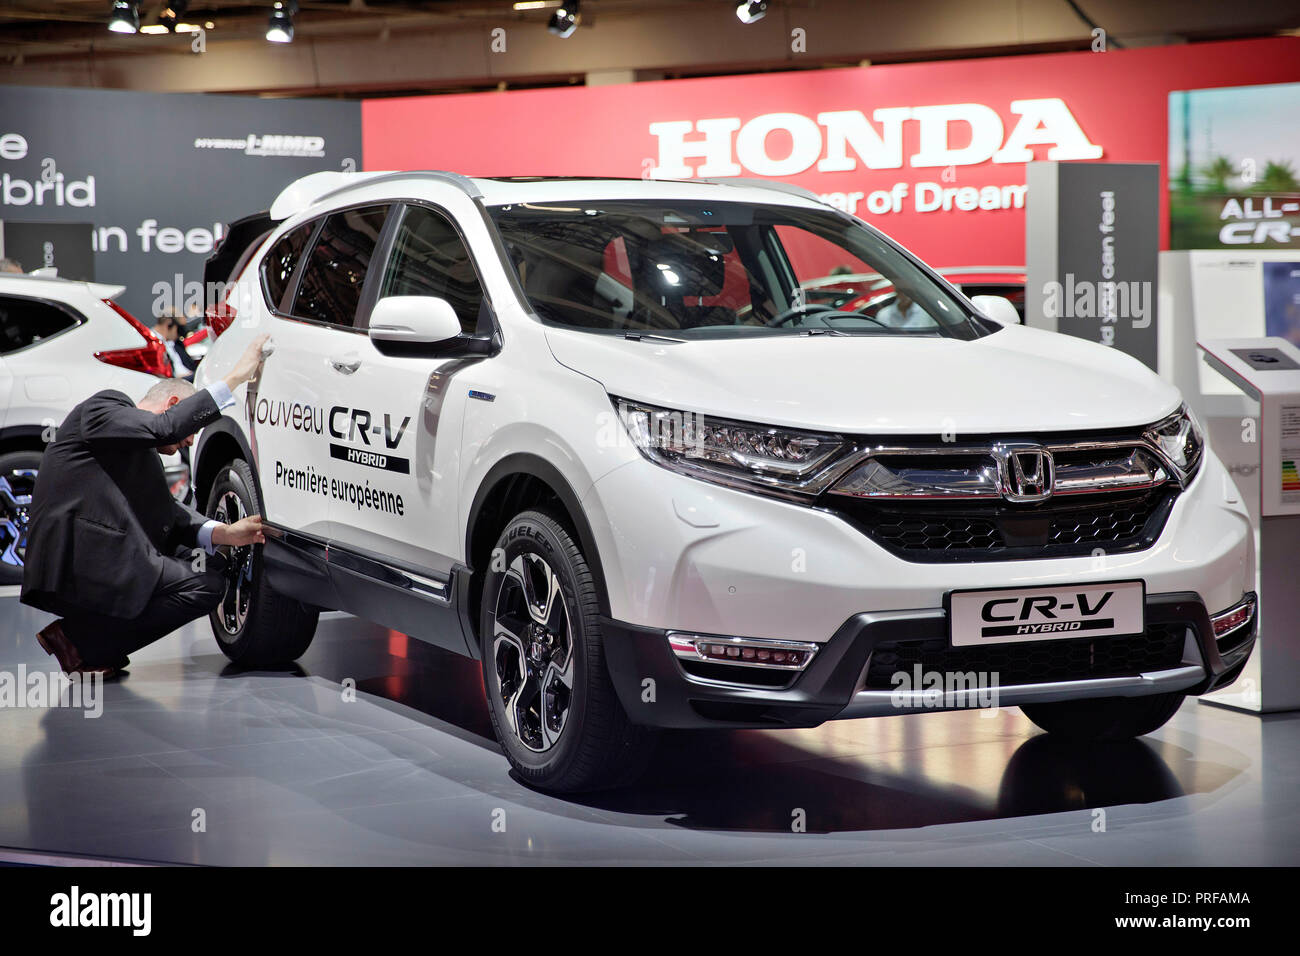 Honda CR-V Hybrid was presented in European Premiere during the first press day of the International Motor Show in Paris, on Tuesday, October 2nd, 201 - Stock Image